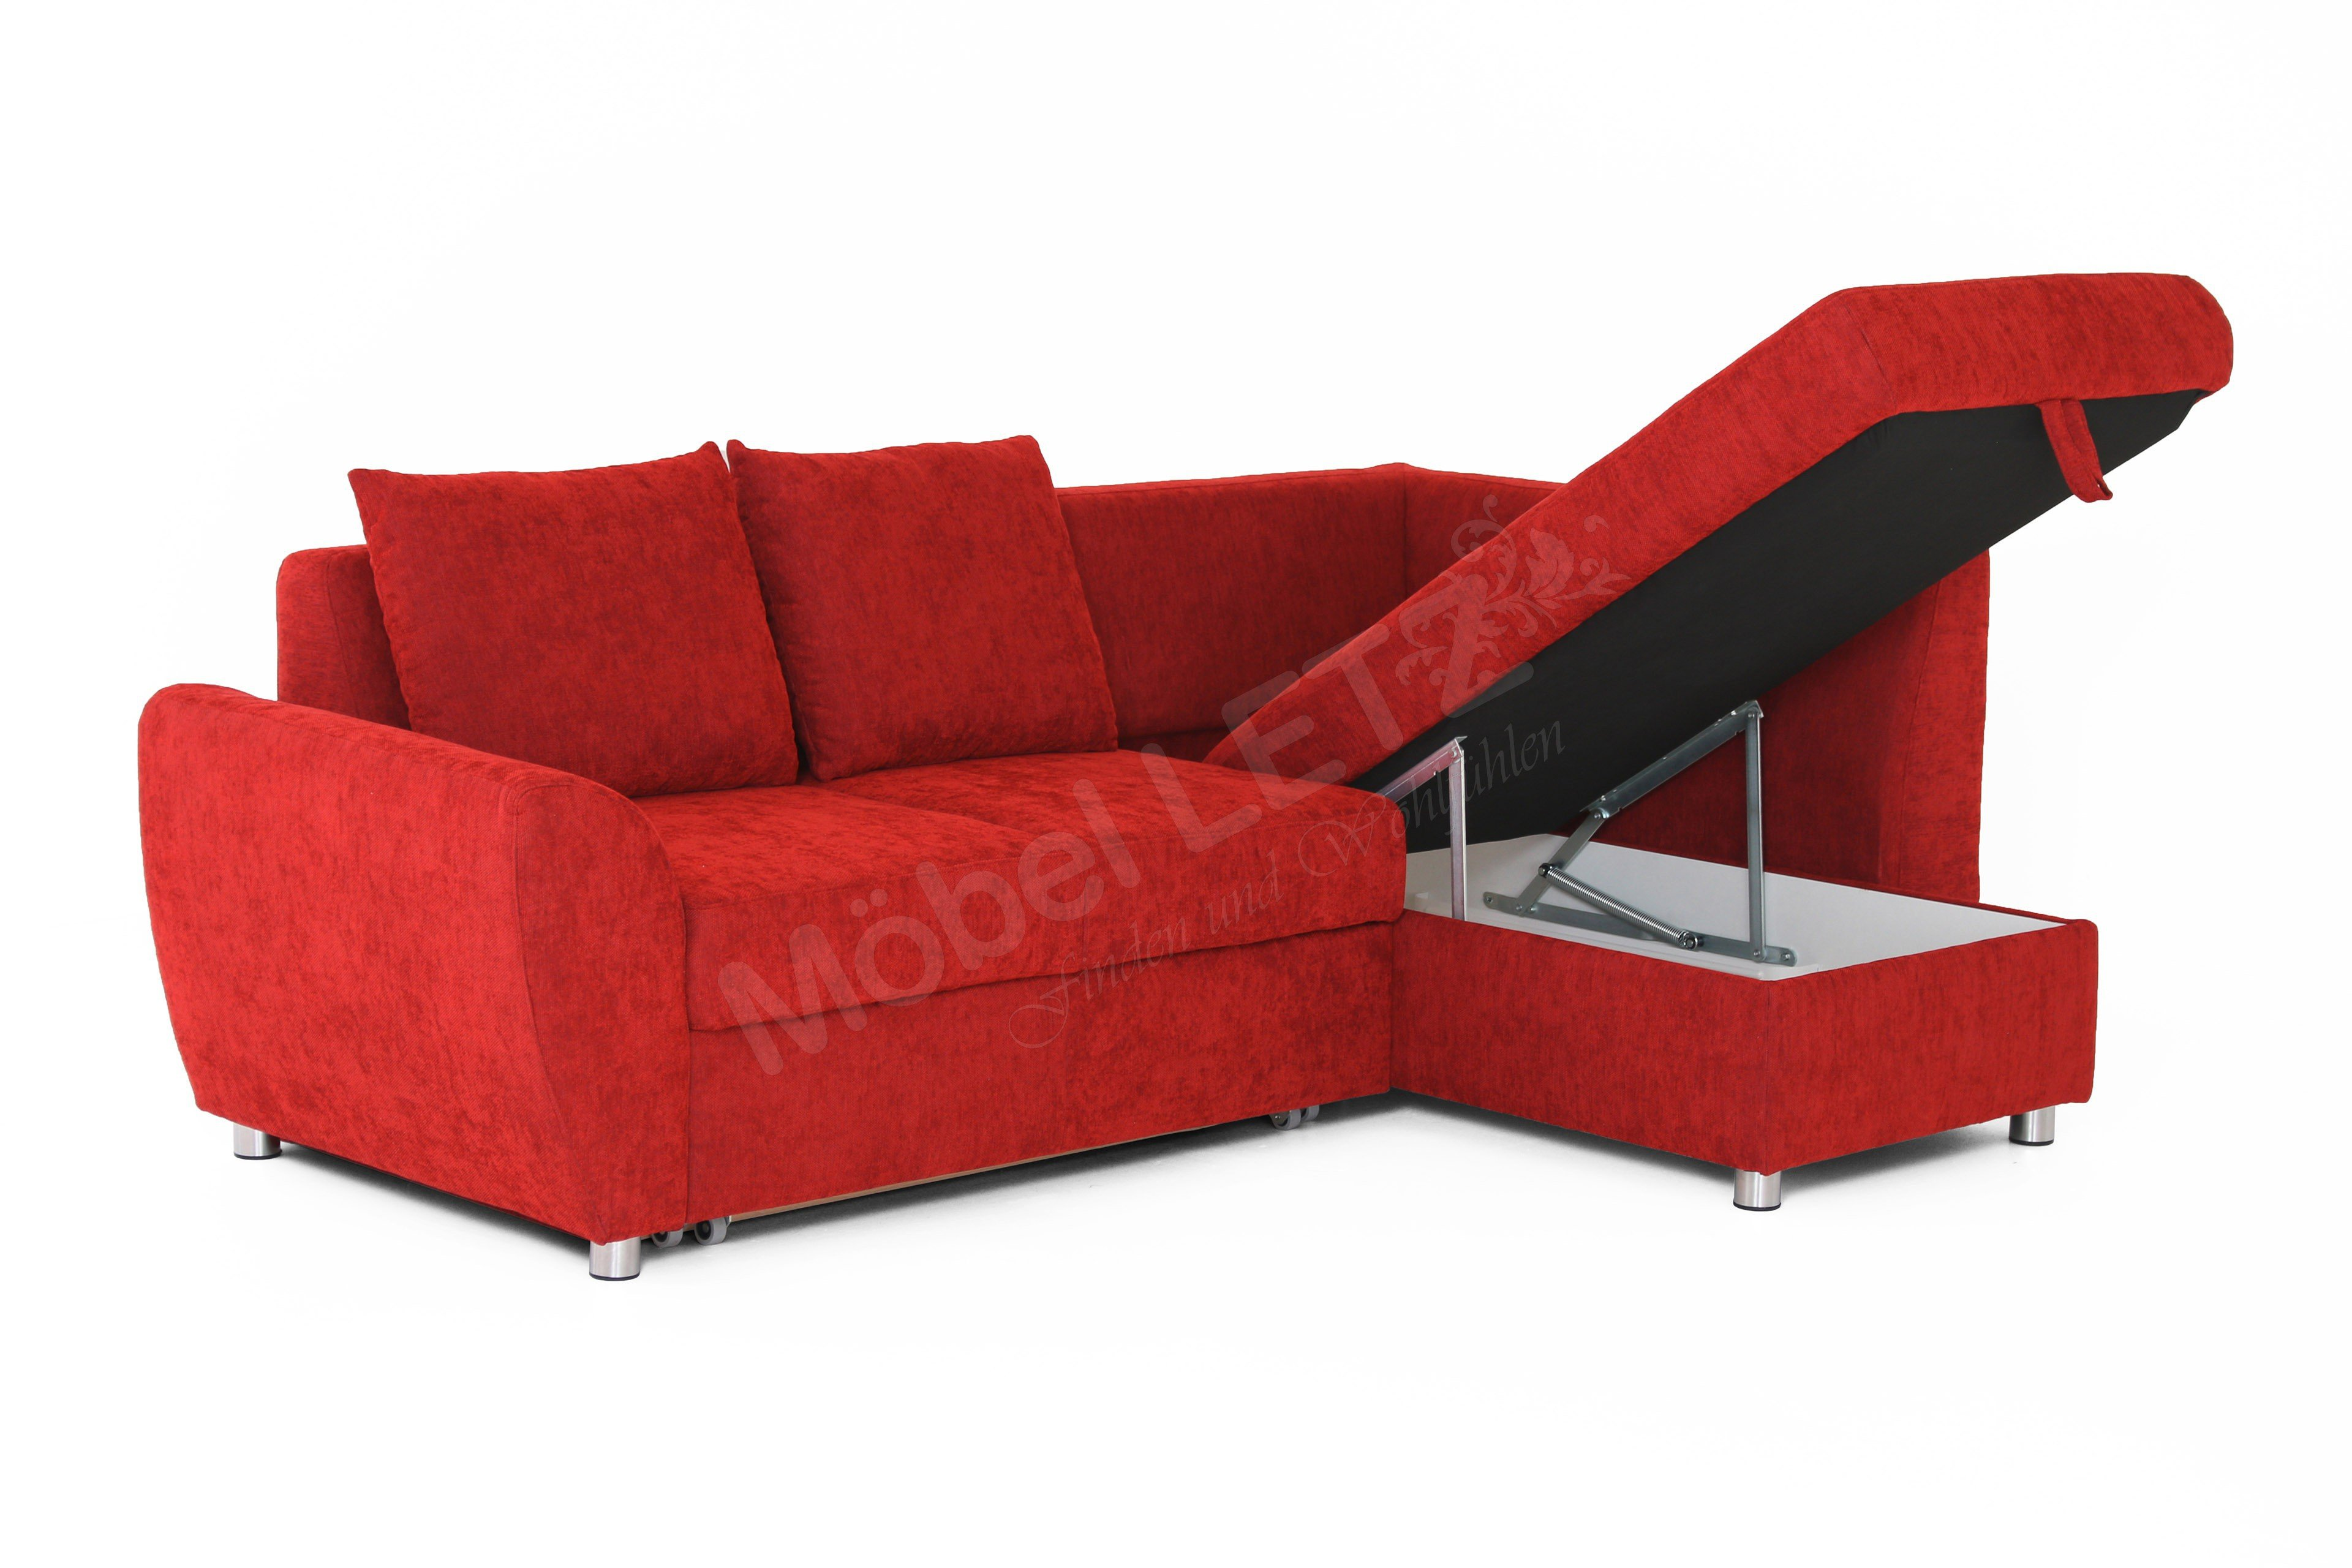 multiflexx von poco ecksofa rot polsterm bel g nstig. Black Bedroom Furniture Sets. Home Design Ideas